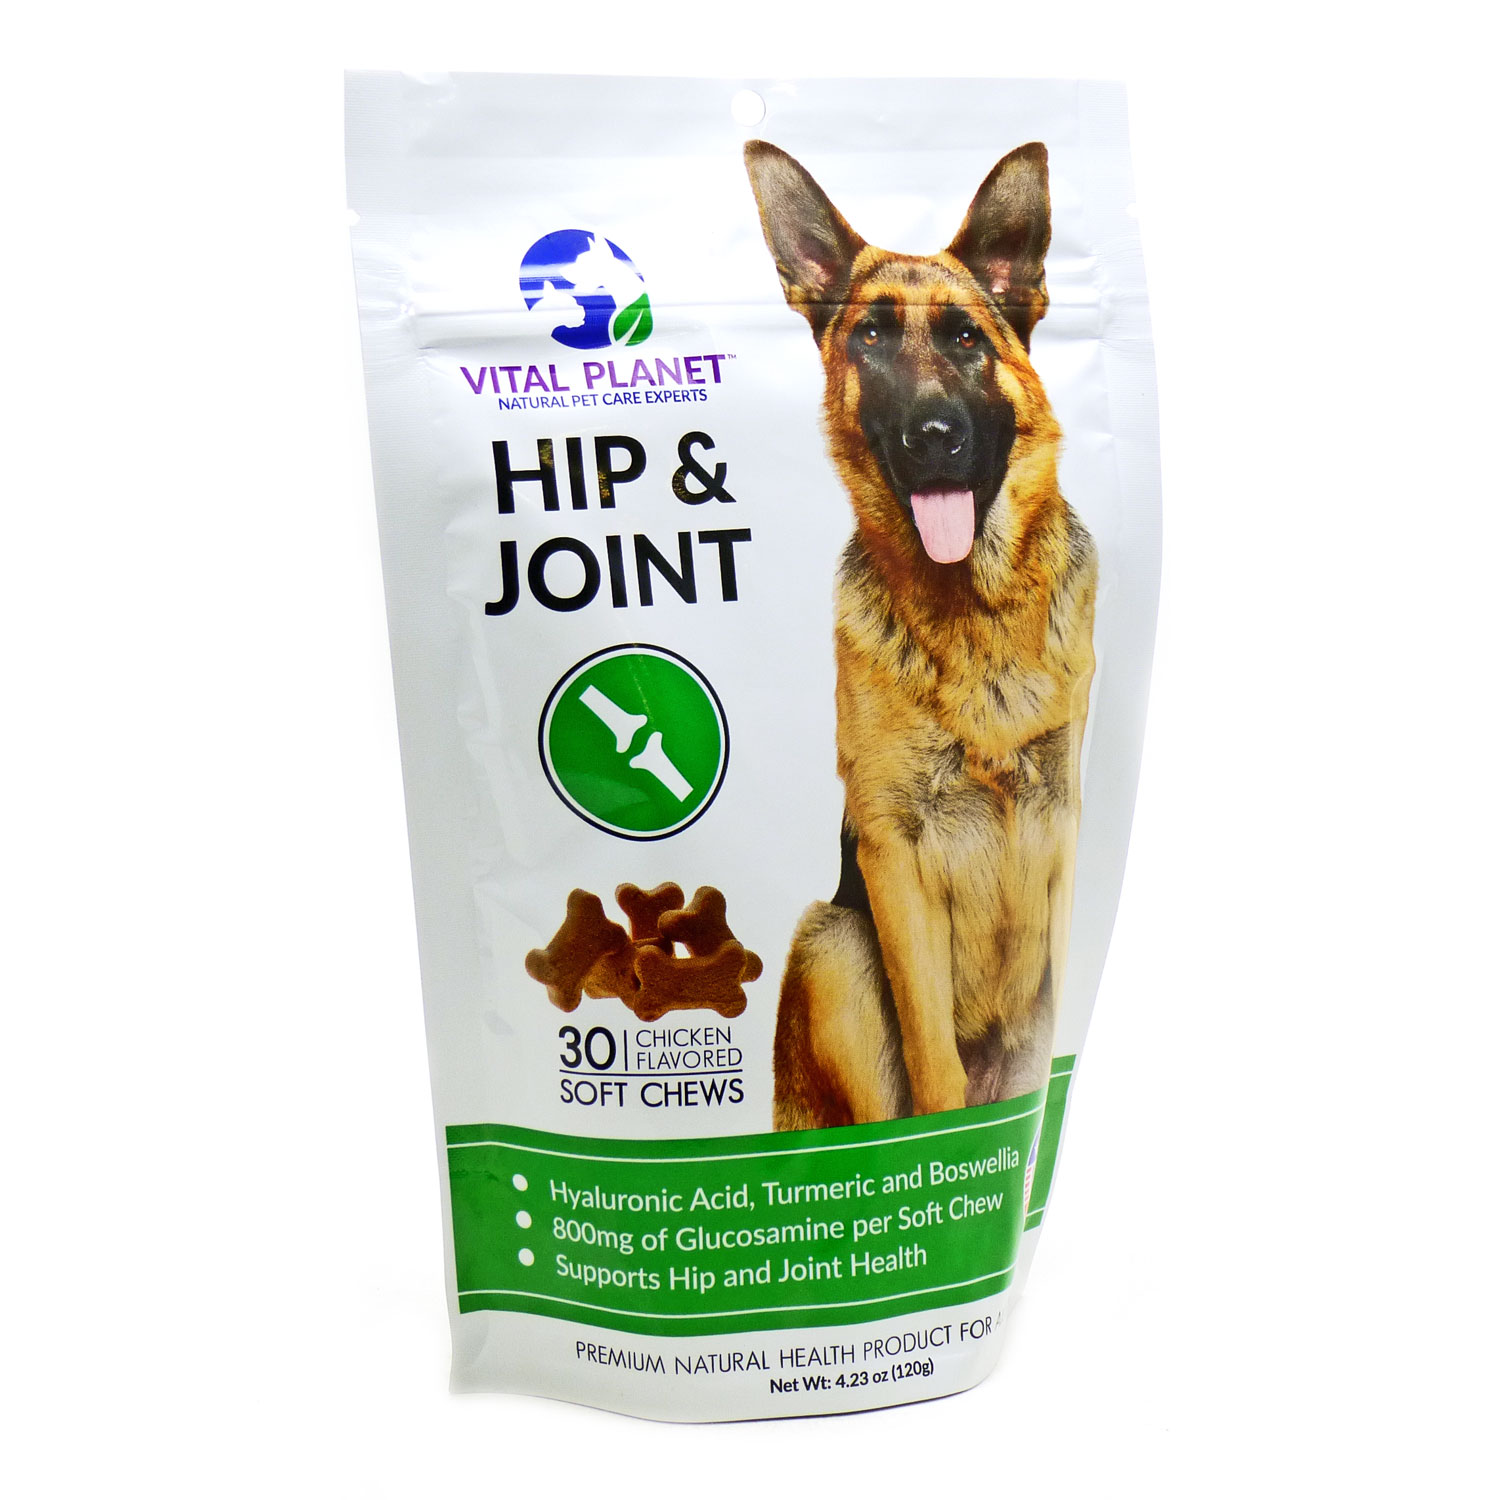 Hip & Joint Chicken Flavored  by vital Planet - 30 Chews